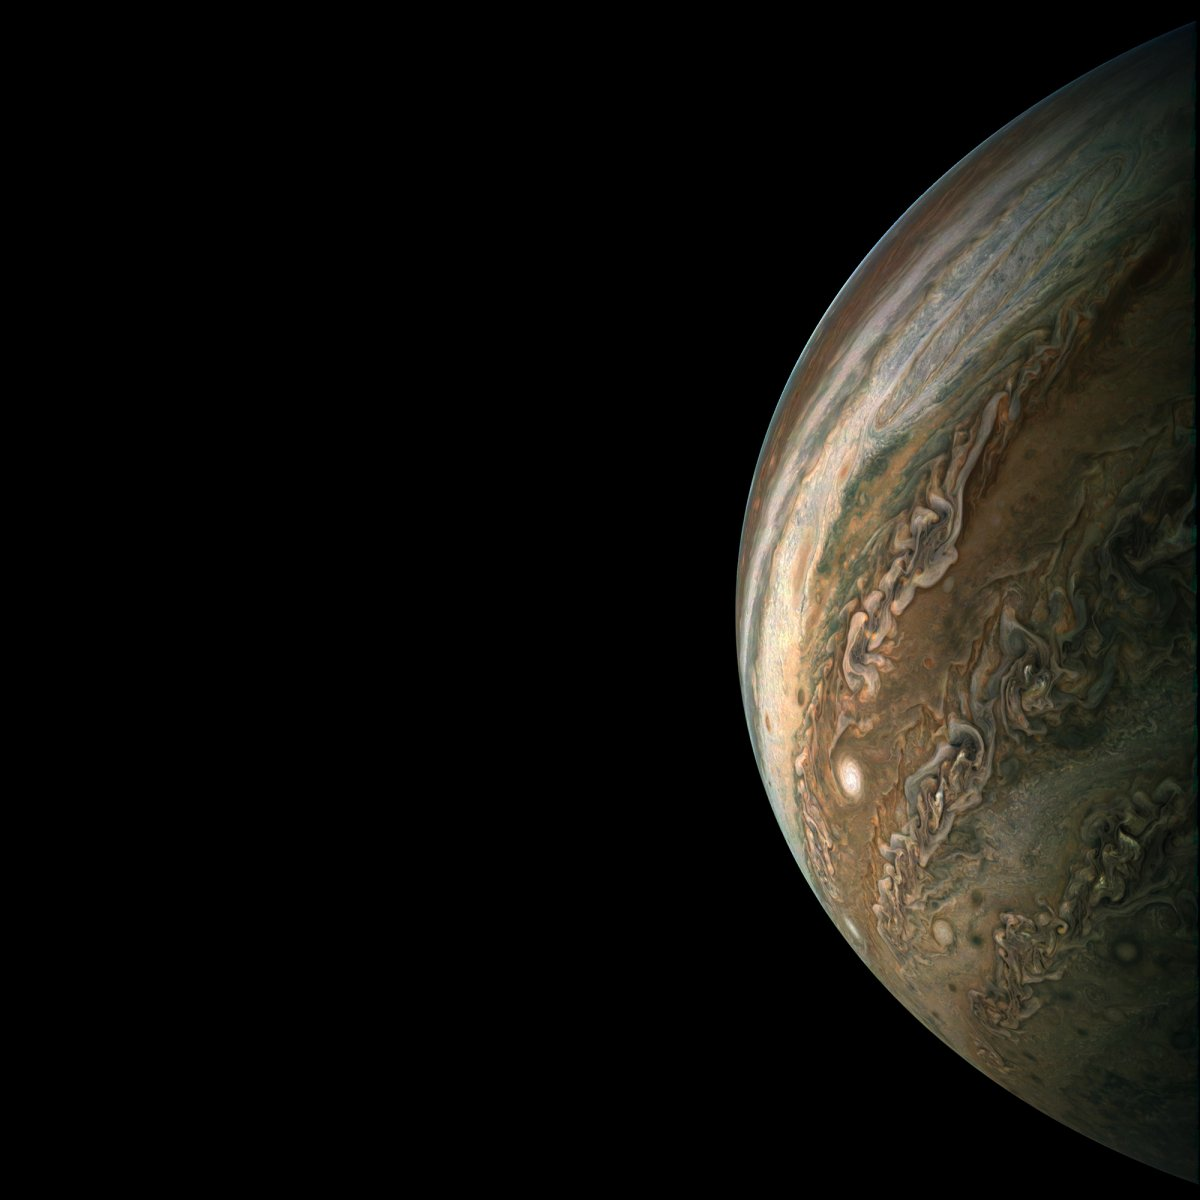 nasa-expects-juno-to-orbit-jupiter-for-at-least-a-couple-more-years-and-continue-beaming-back-incredible-new-pictures